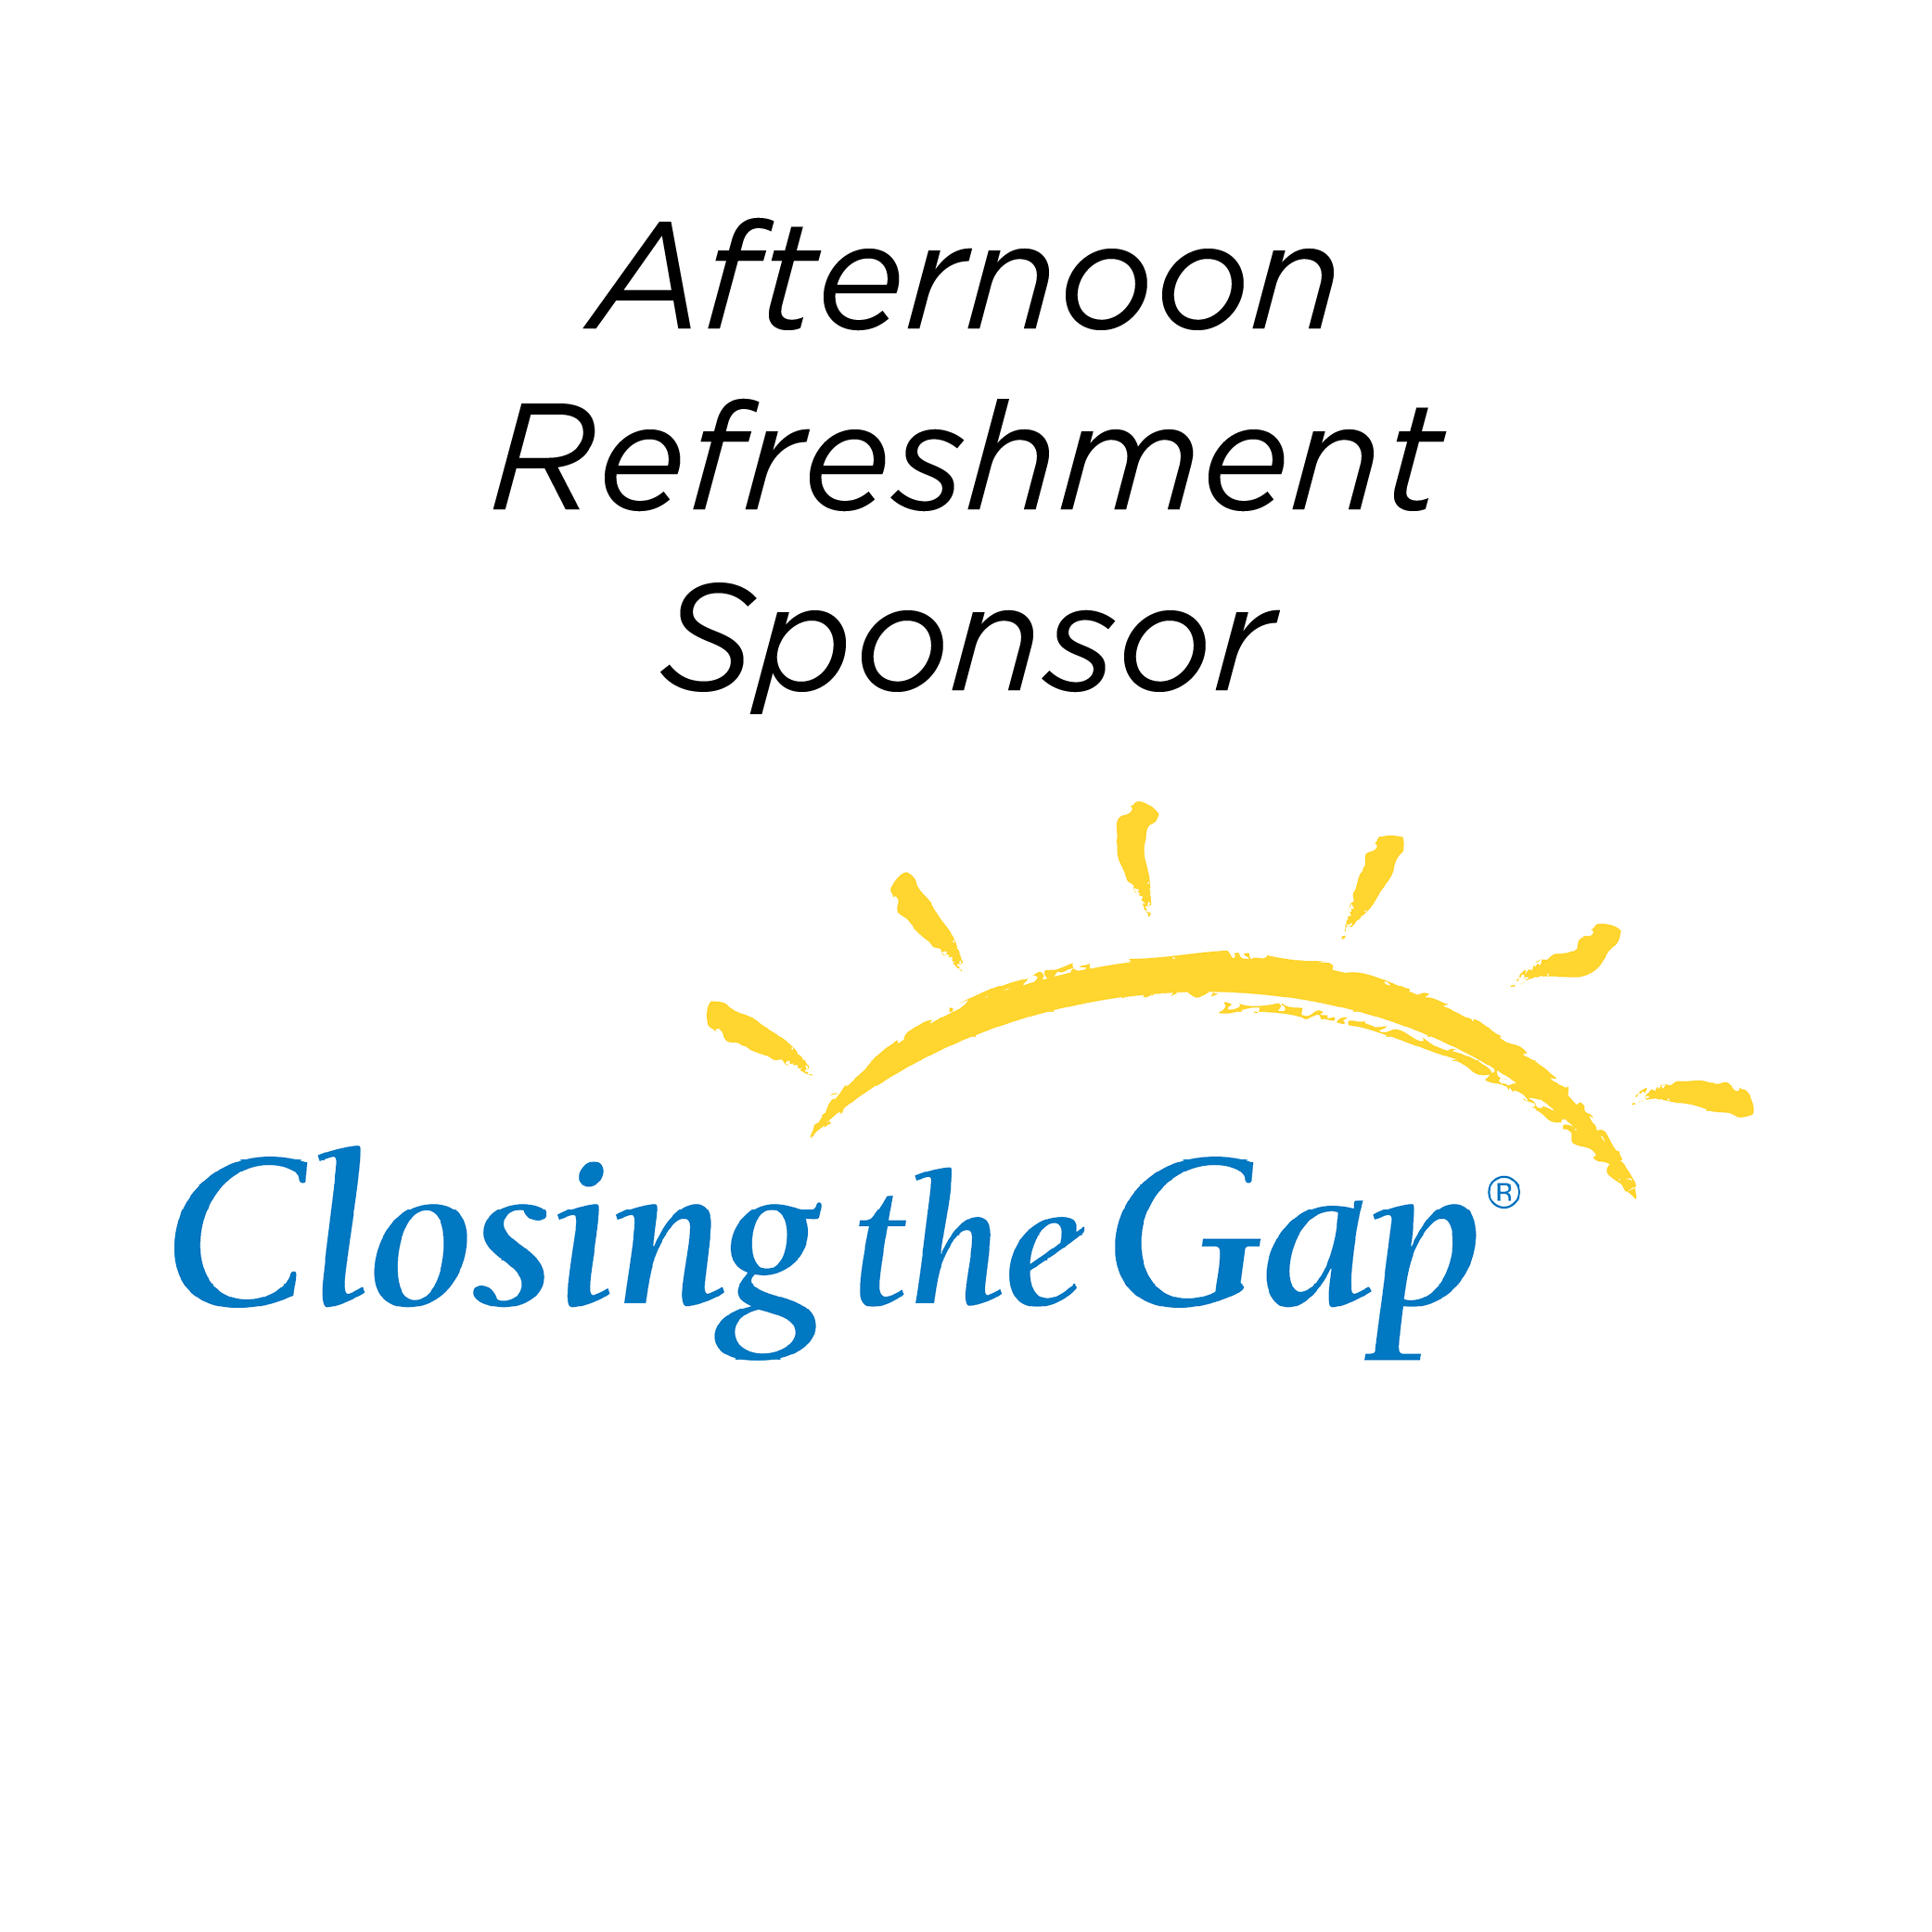 Closing the Gap - Afternoon Refreshment